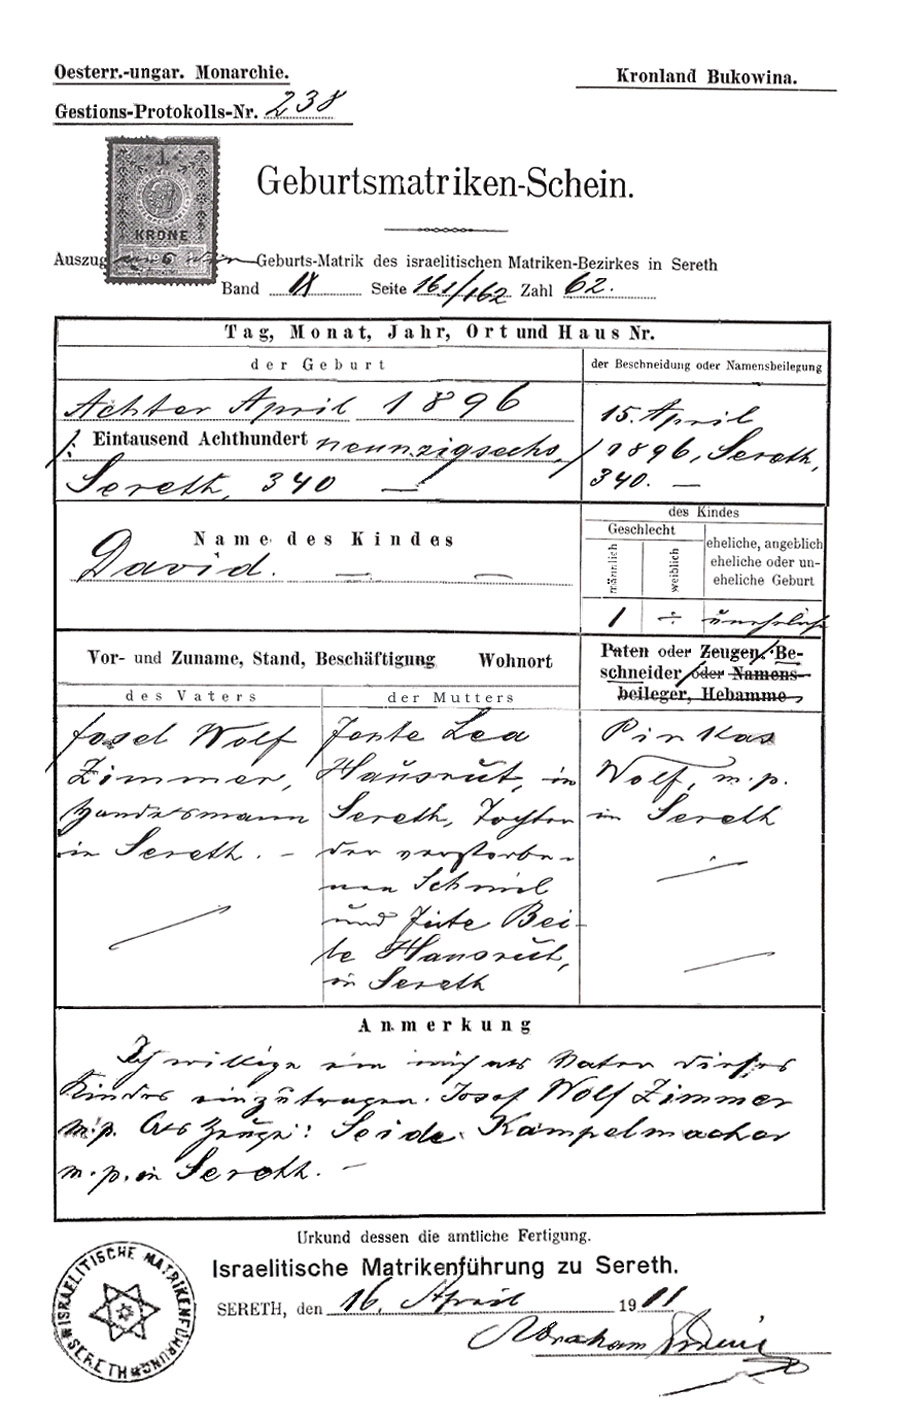 Esther m zimmer lederberg family records david zimmers birth esthers fathers birth cert kronland bukowina oesterr ungar monarchie xflitez Image collections